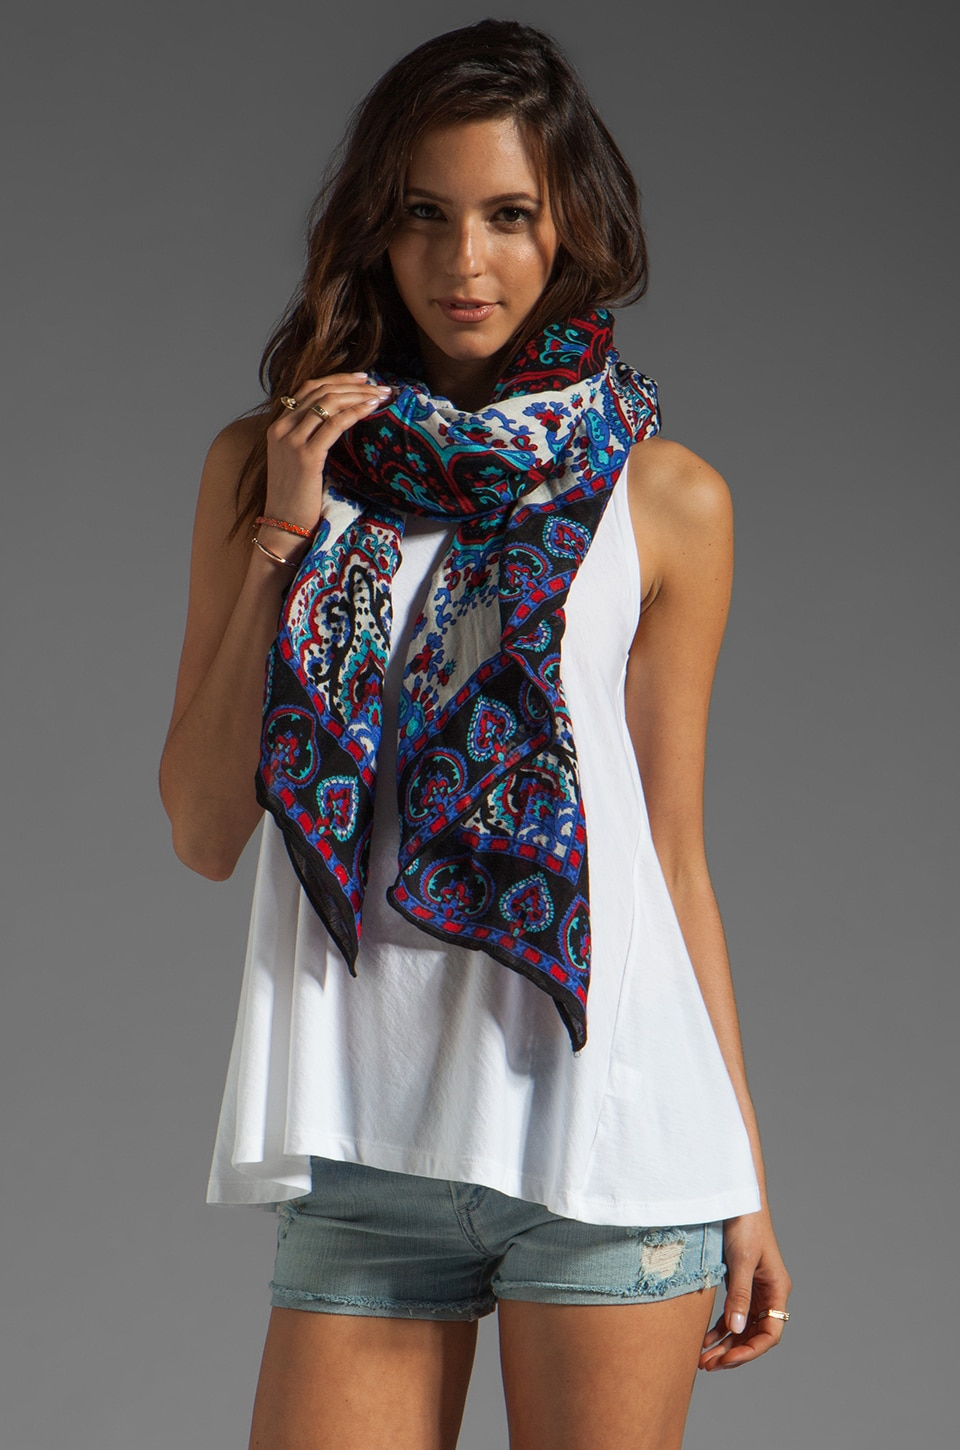 Theodora & Callum Casablanca Scarf in Black Multi